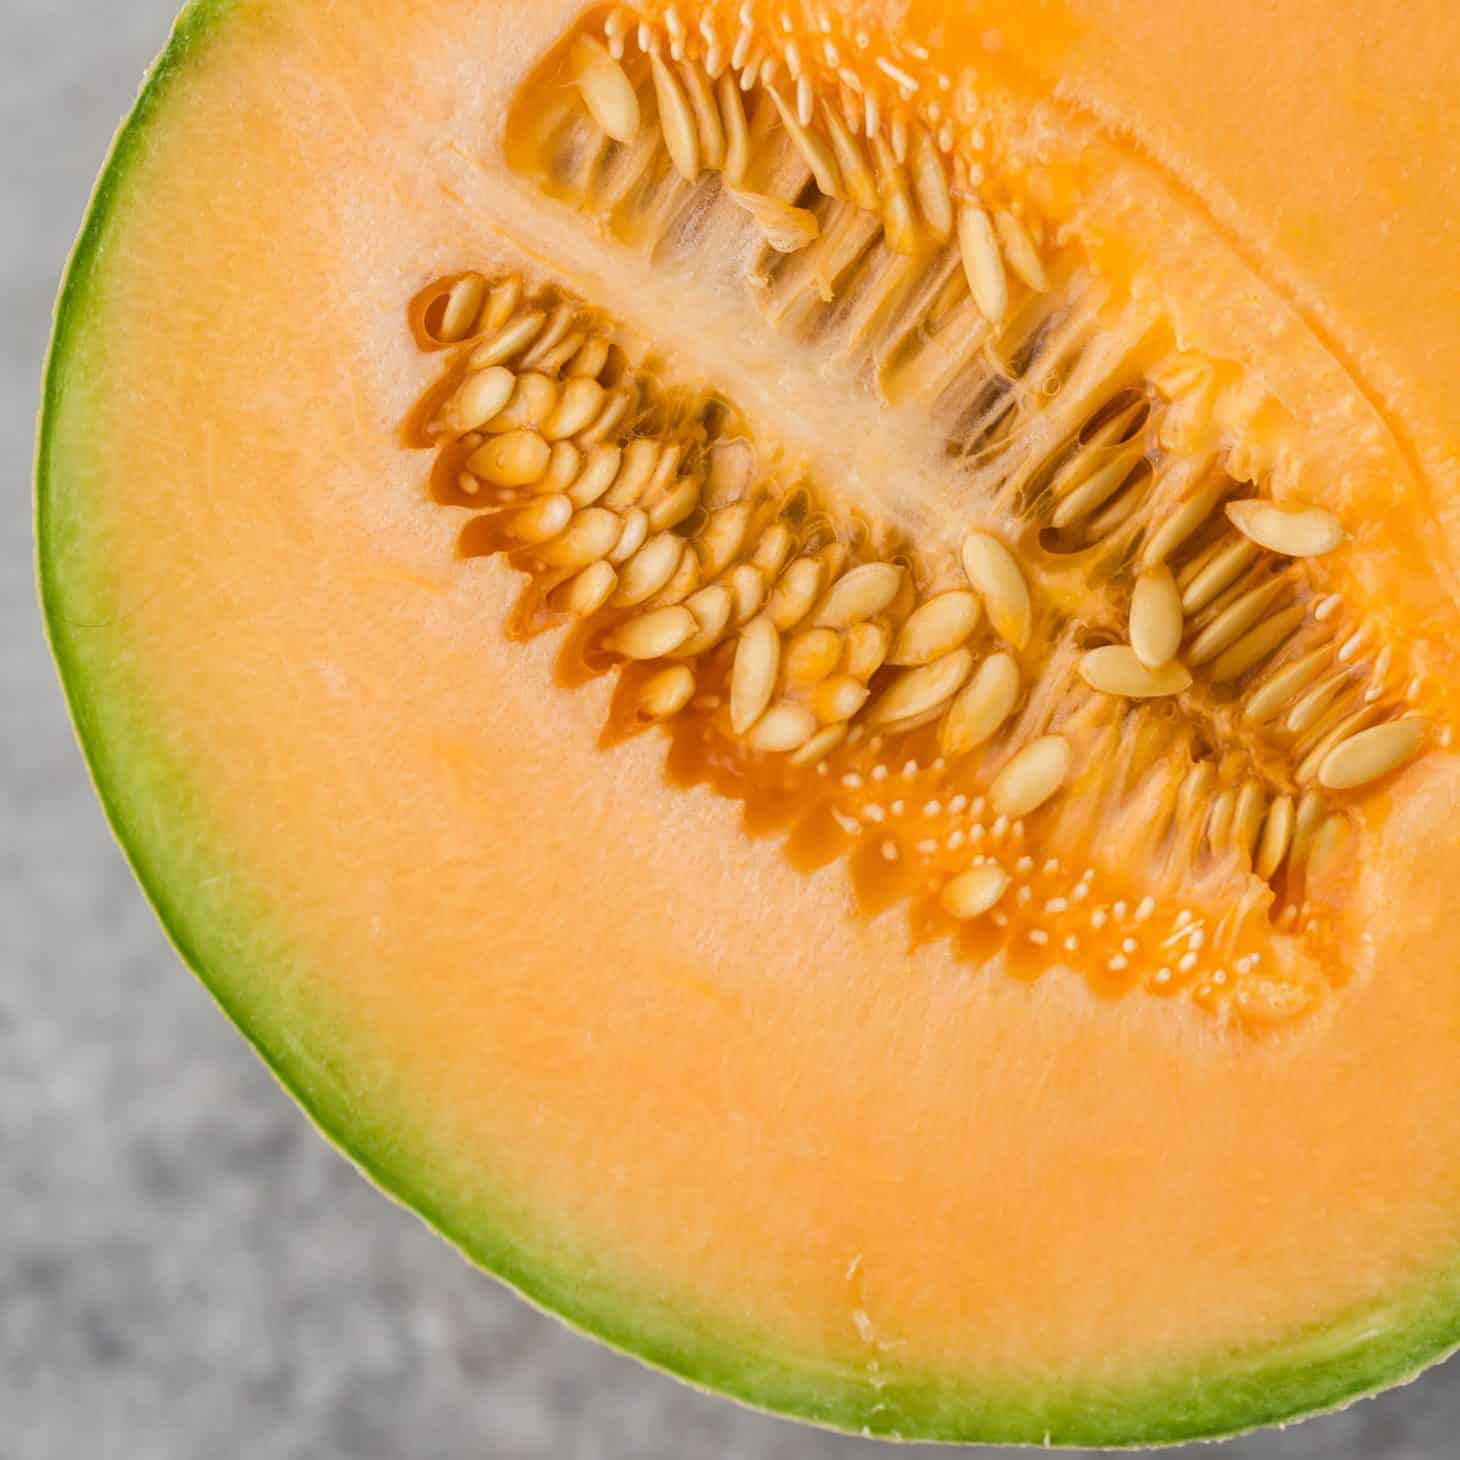 Melon - Explore an Ingredient - Naturally Ella